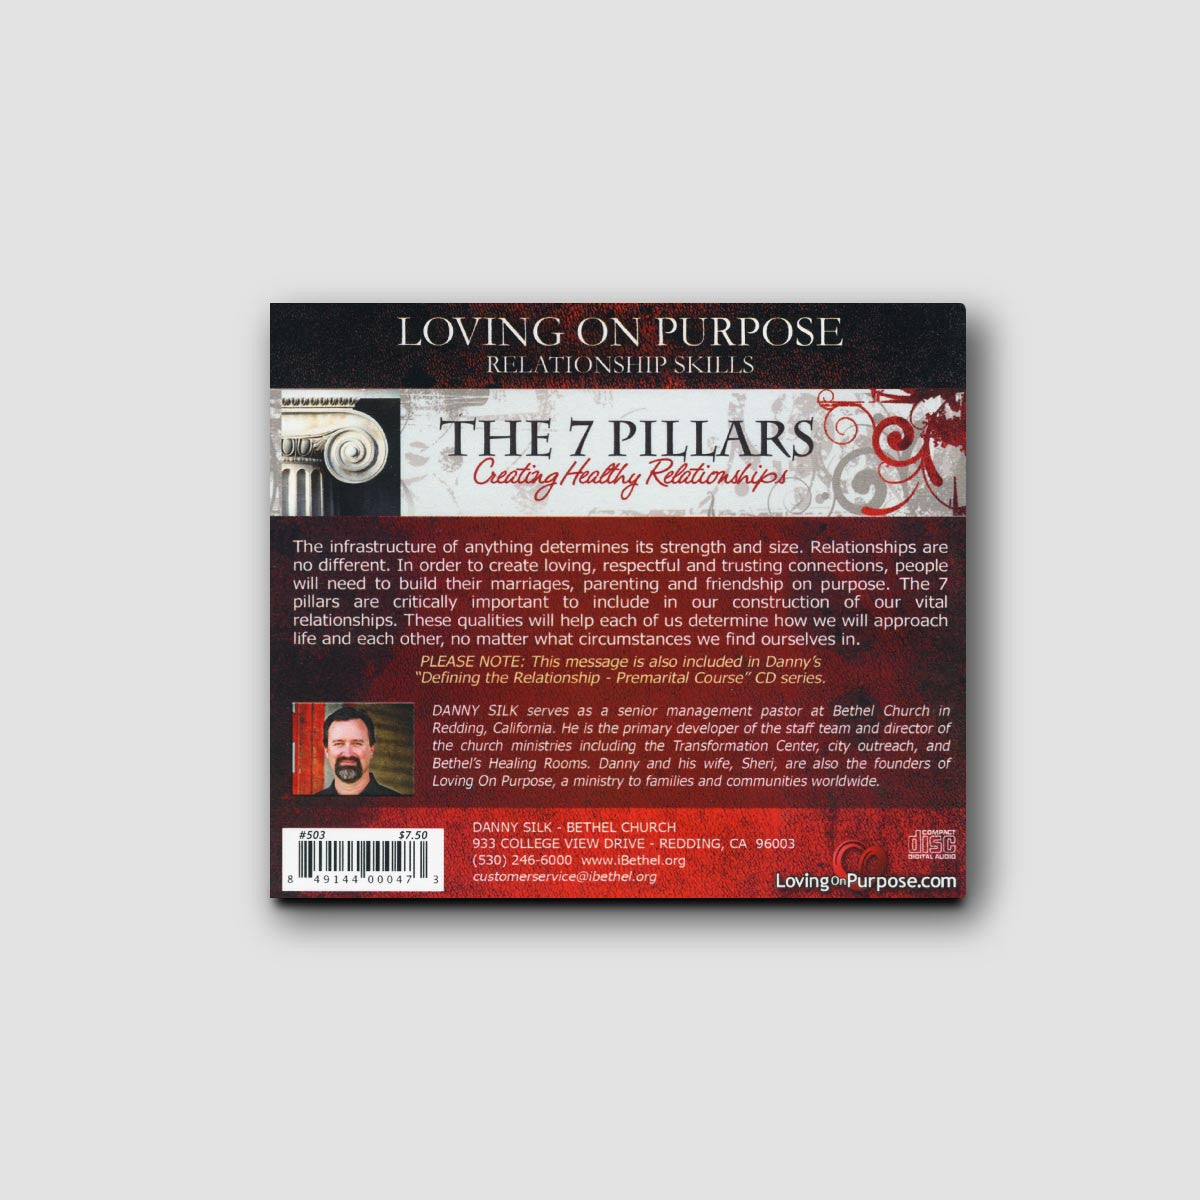 The 7 Pillars: Creating Healthy Relationships